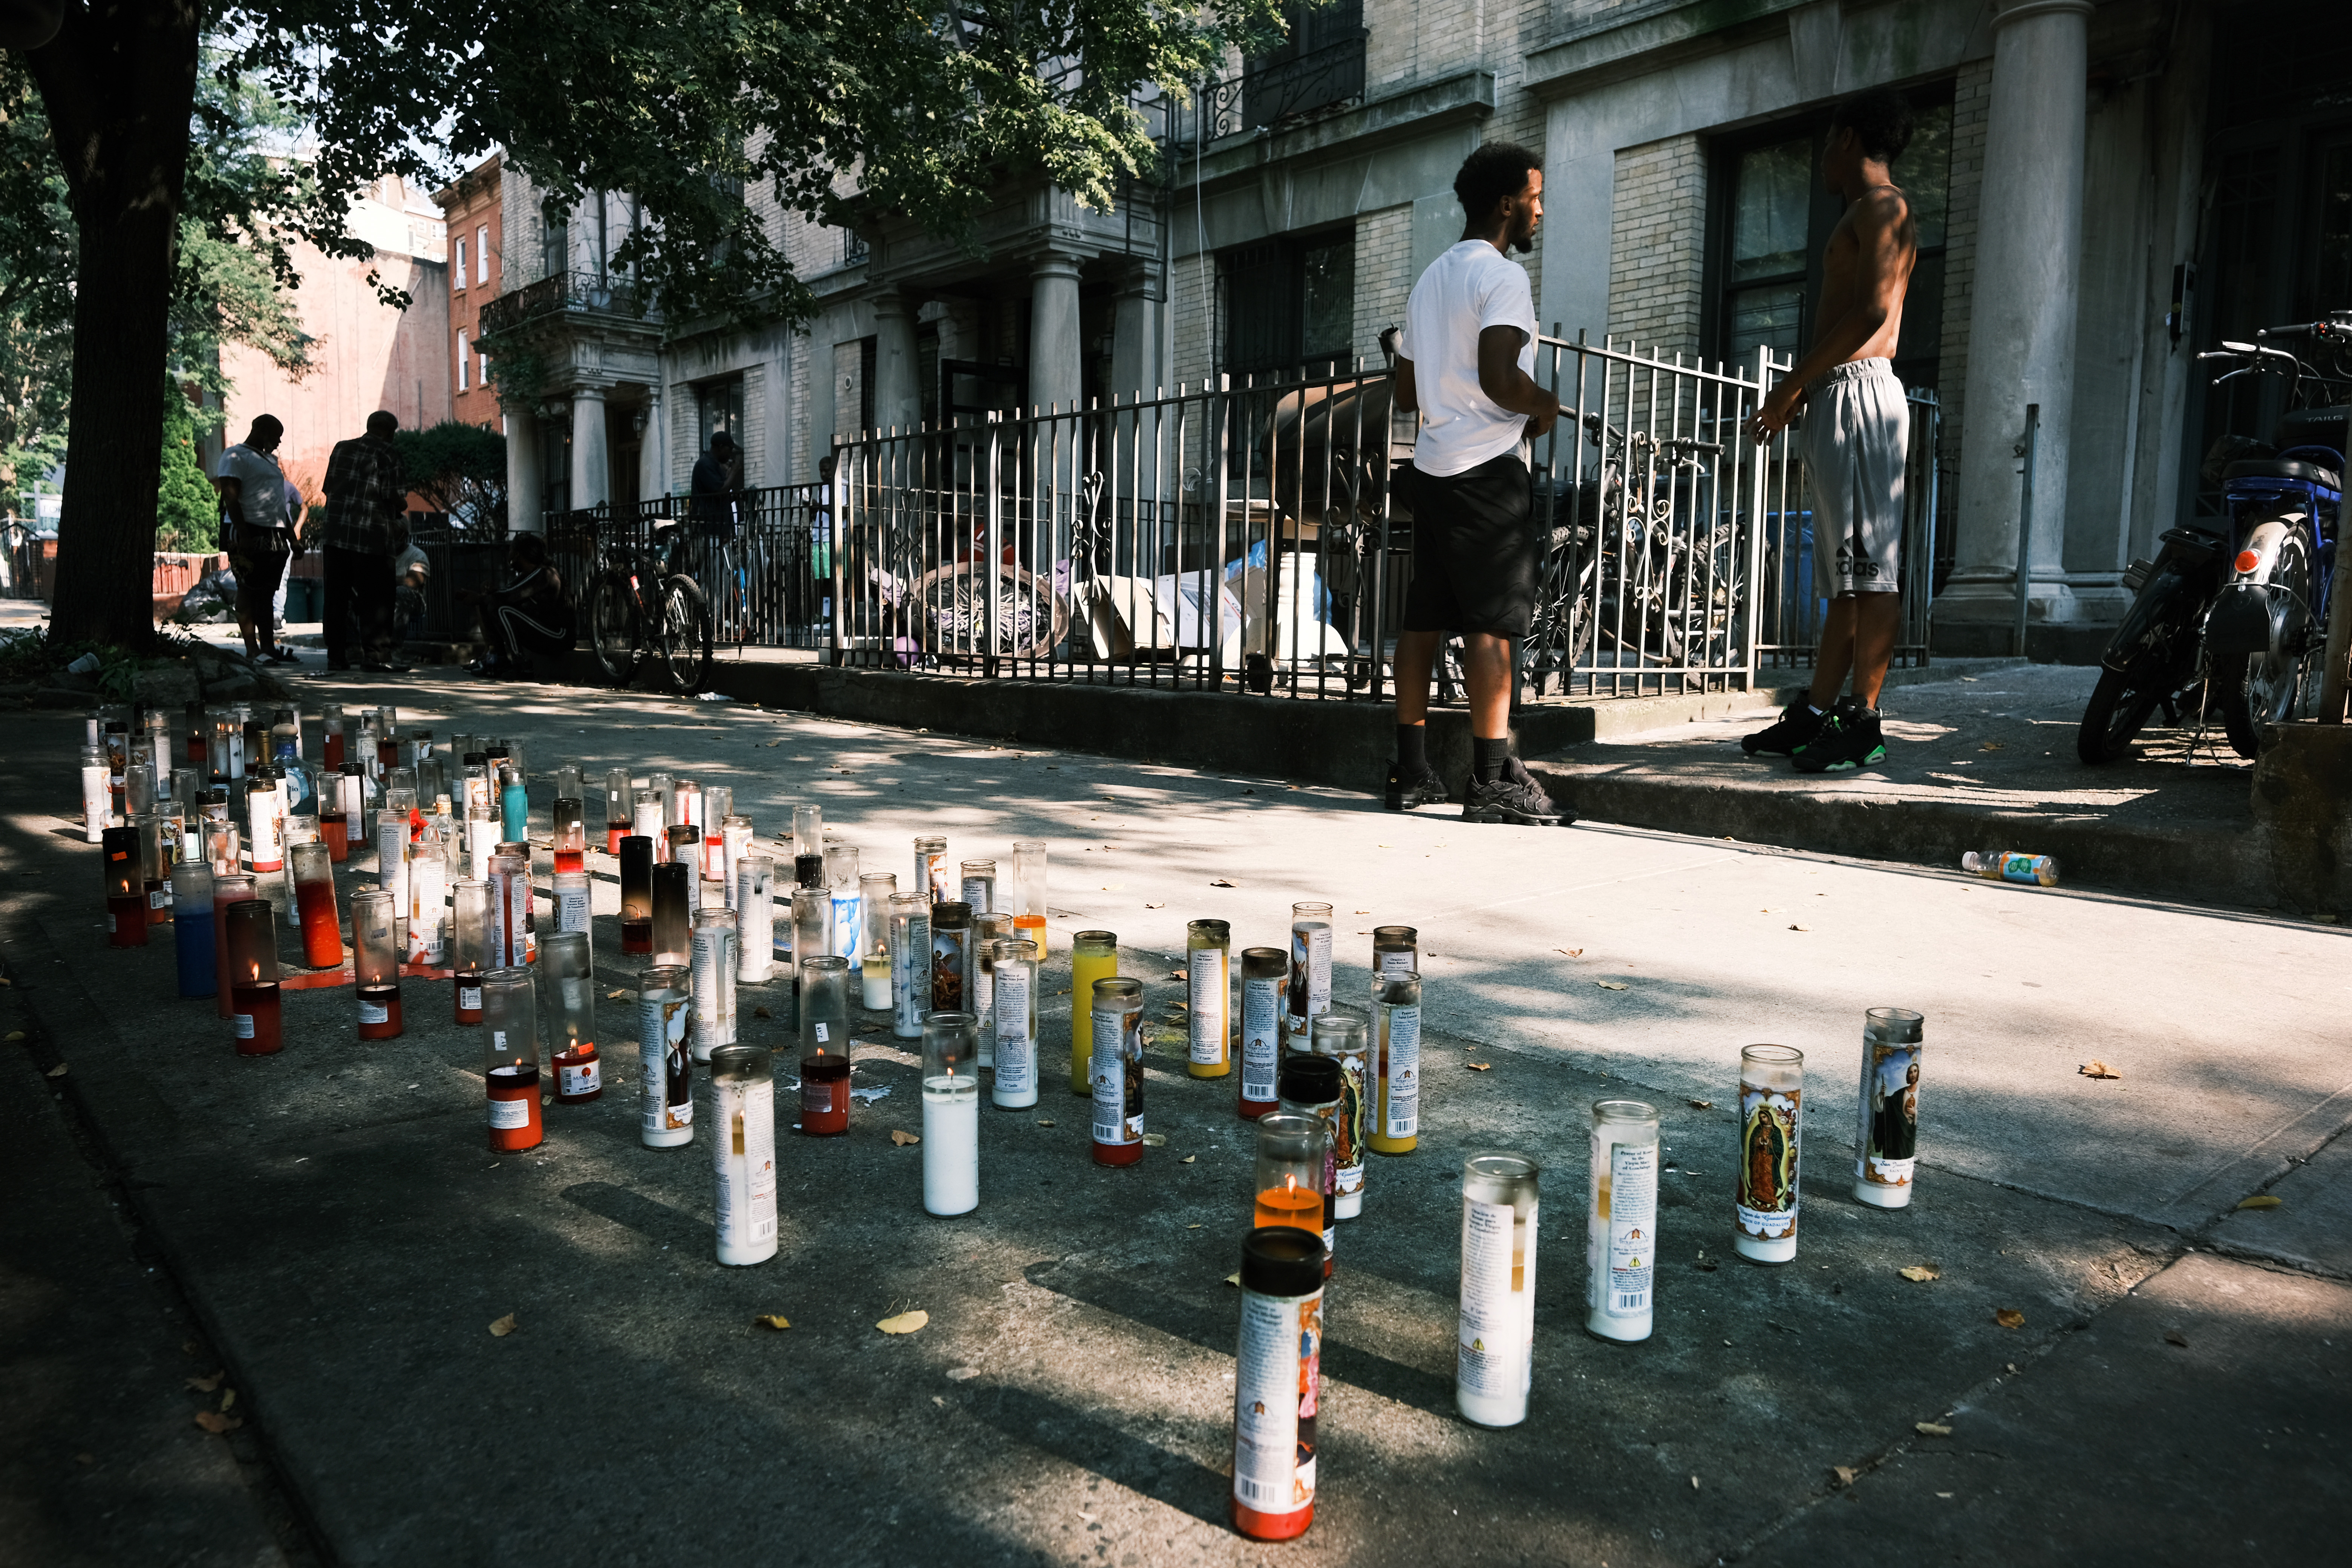 A memorial for a victim of gun violence sits on the edge of a sidewalk.